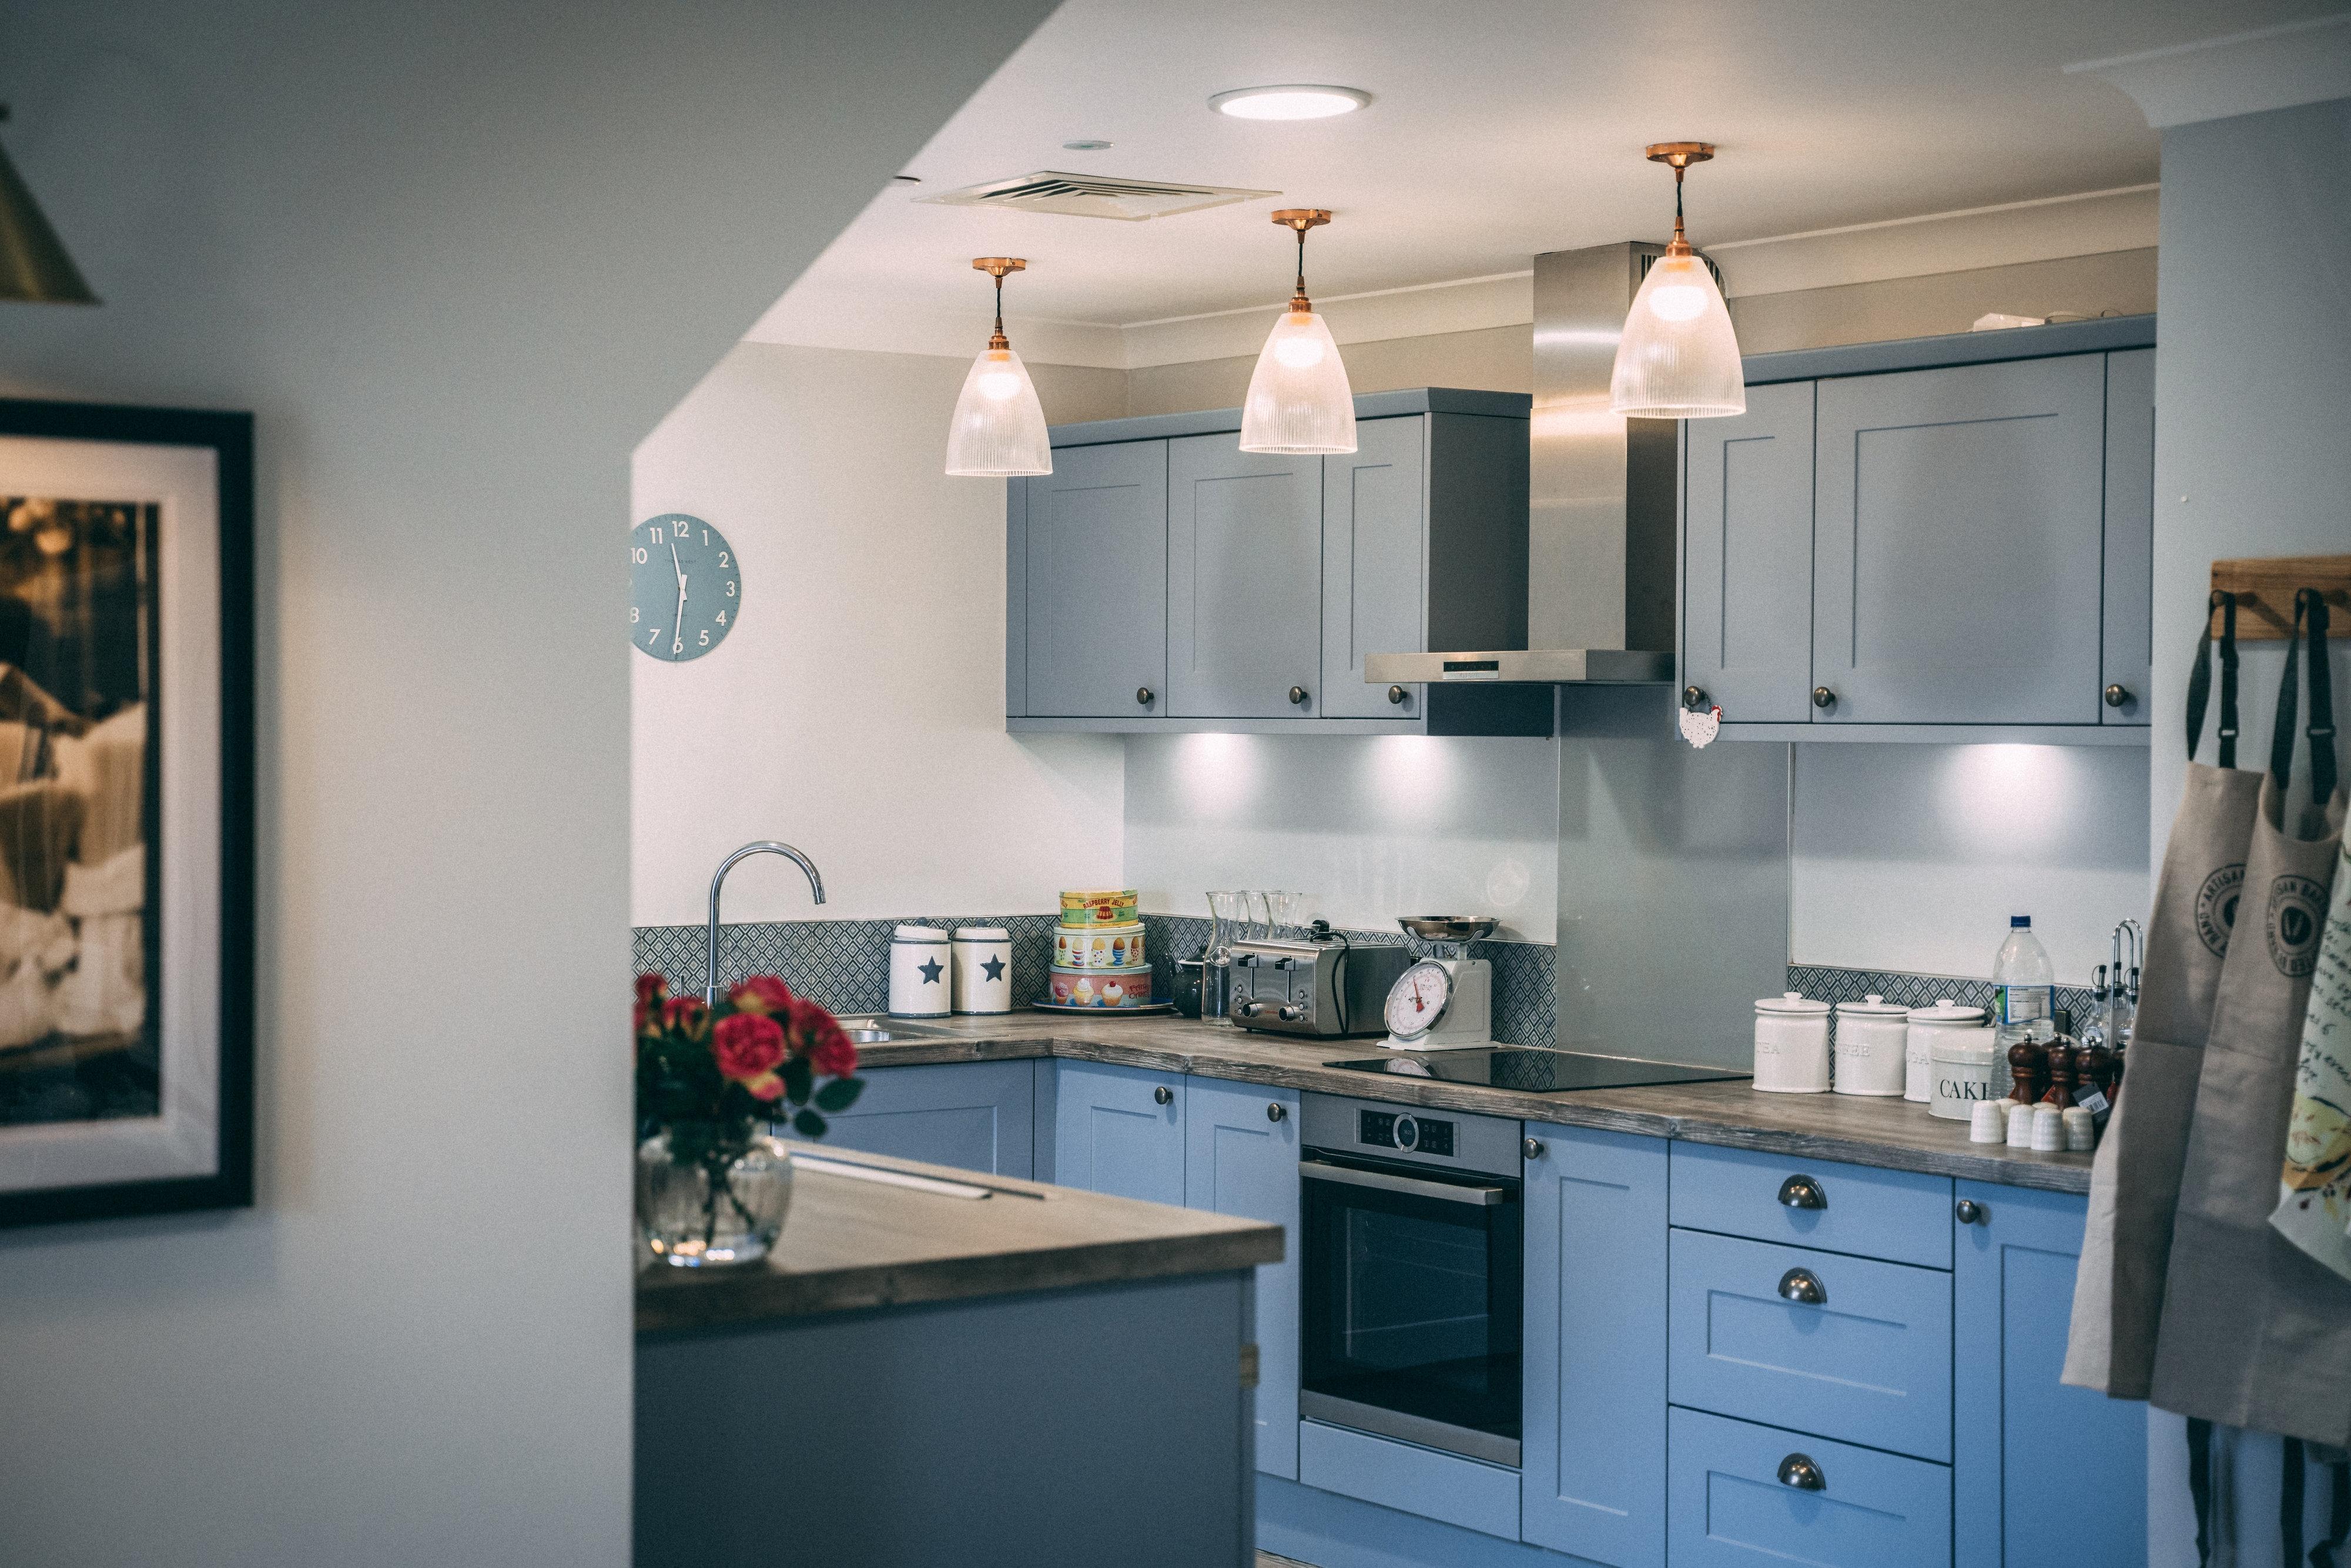 Resident Kitchen Care Home design